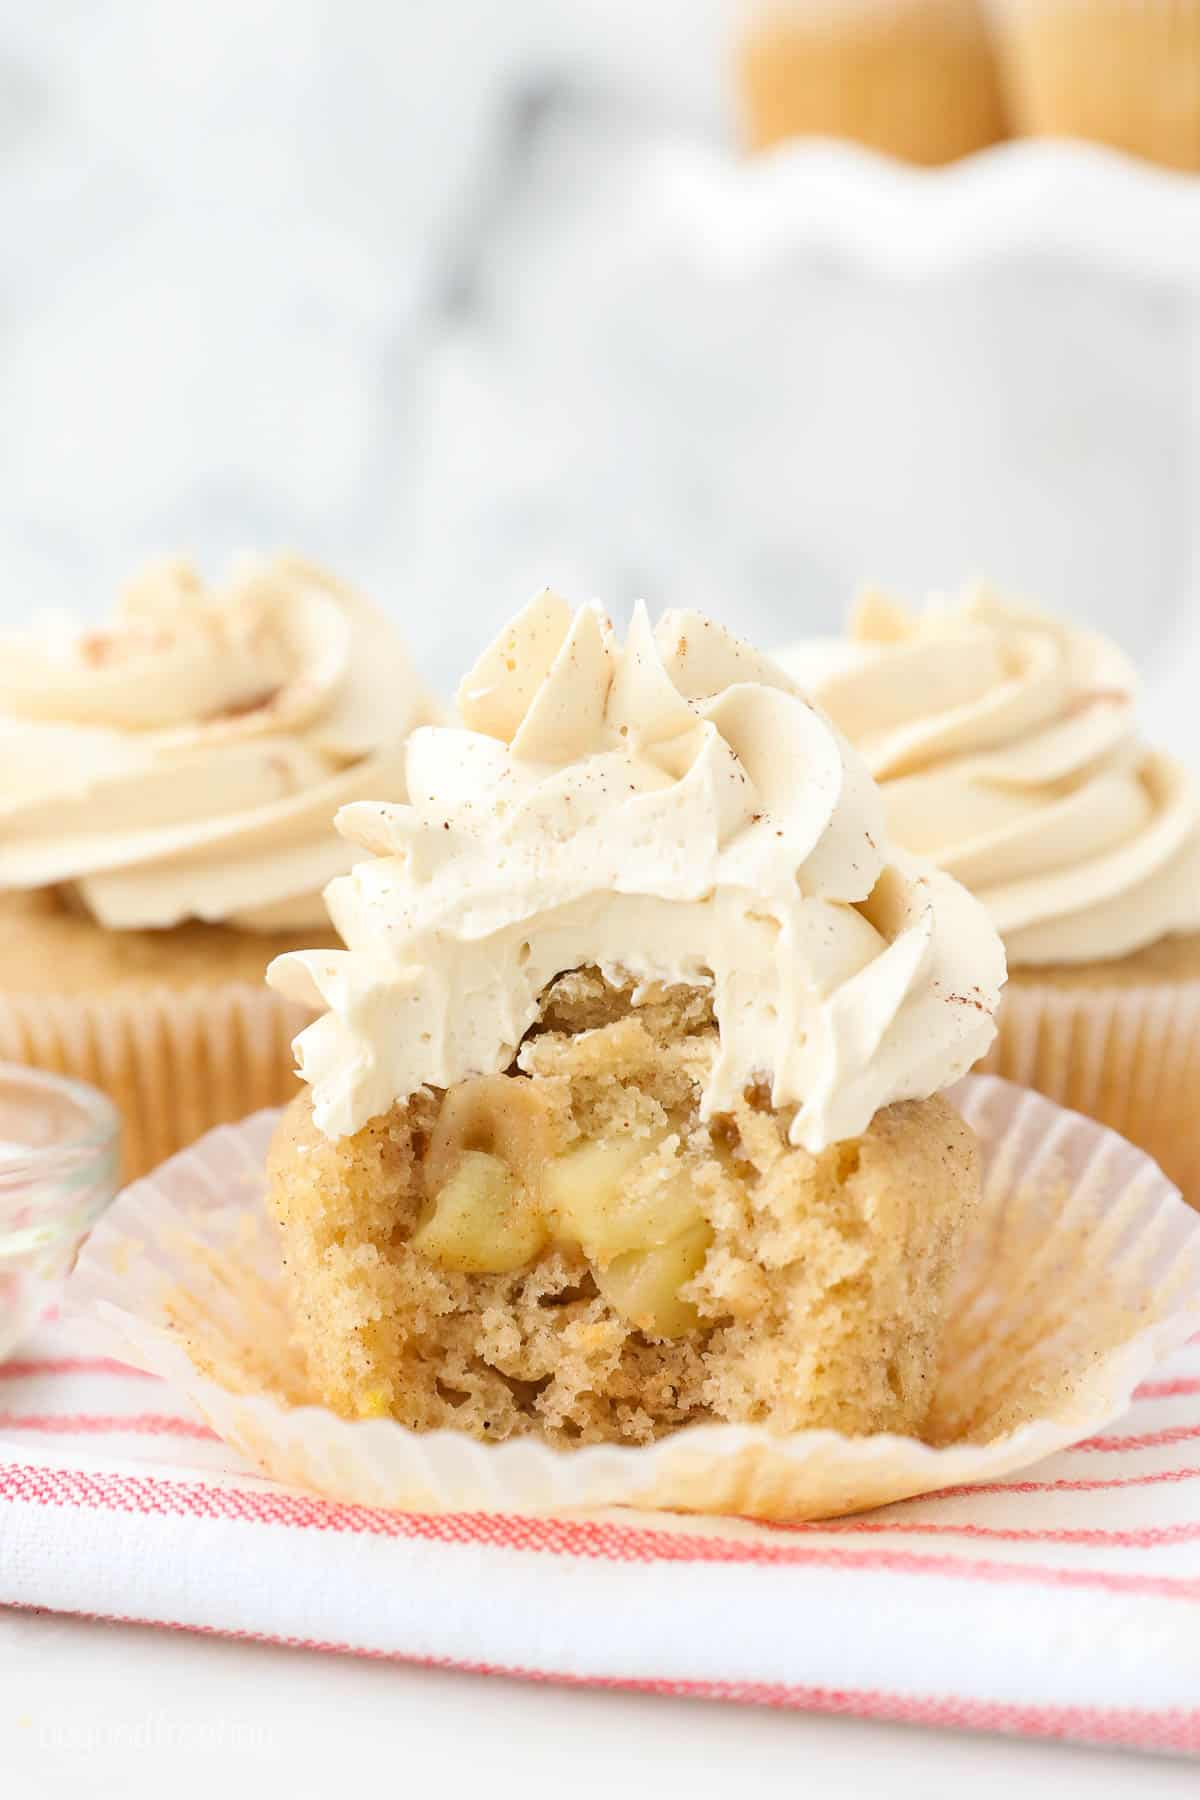 an apple pie cupcake with a bite taken out